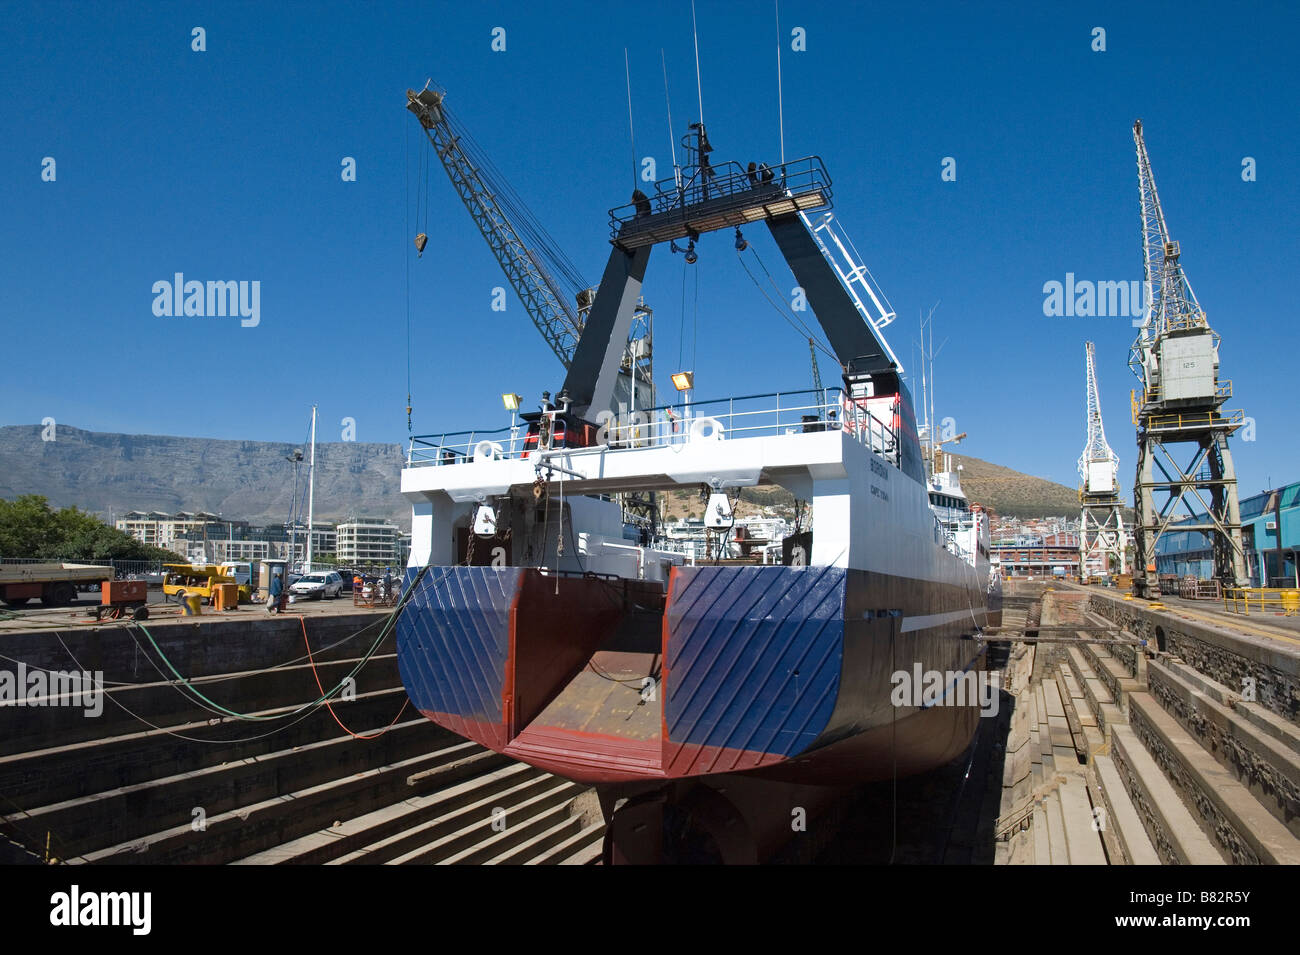 Fish trawler in a dry dock in Cape Town South Africa - Stock Image